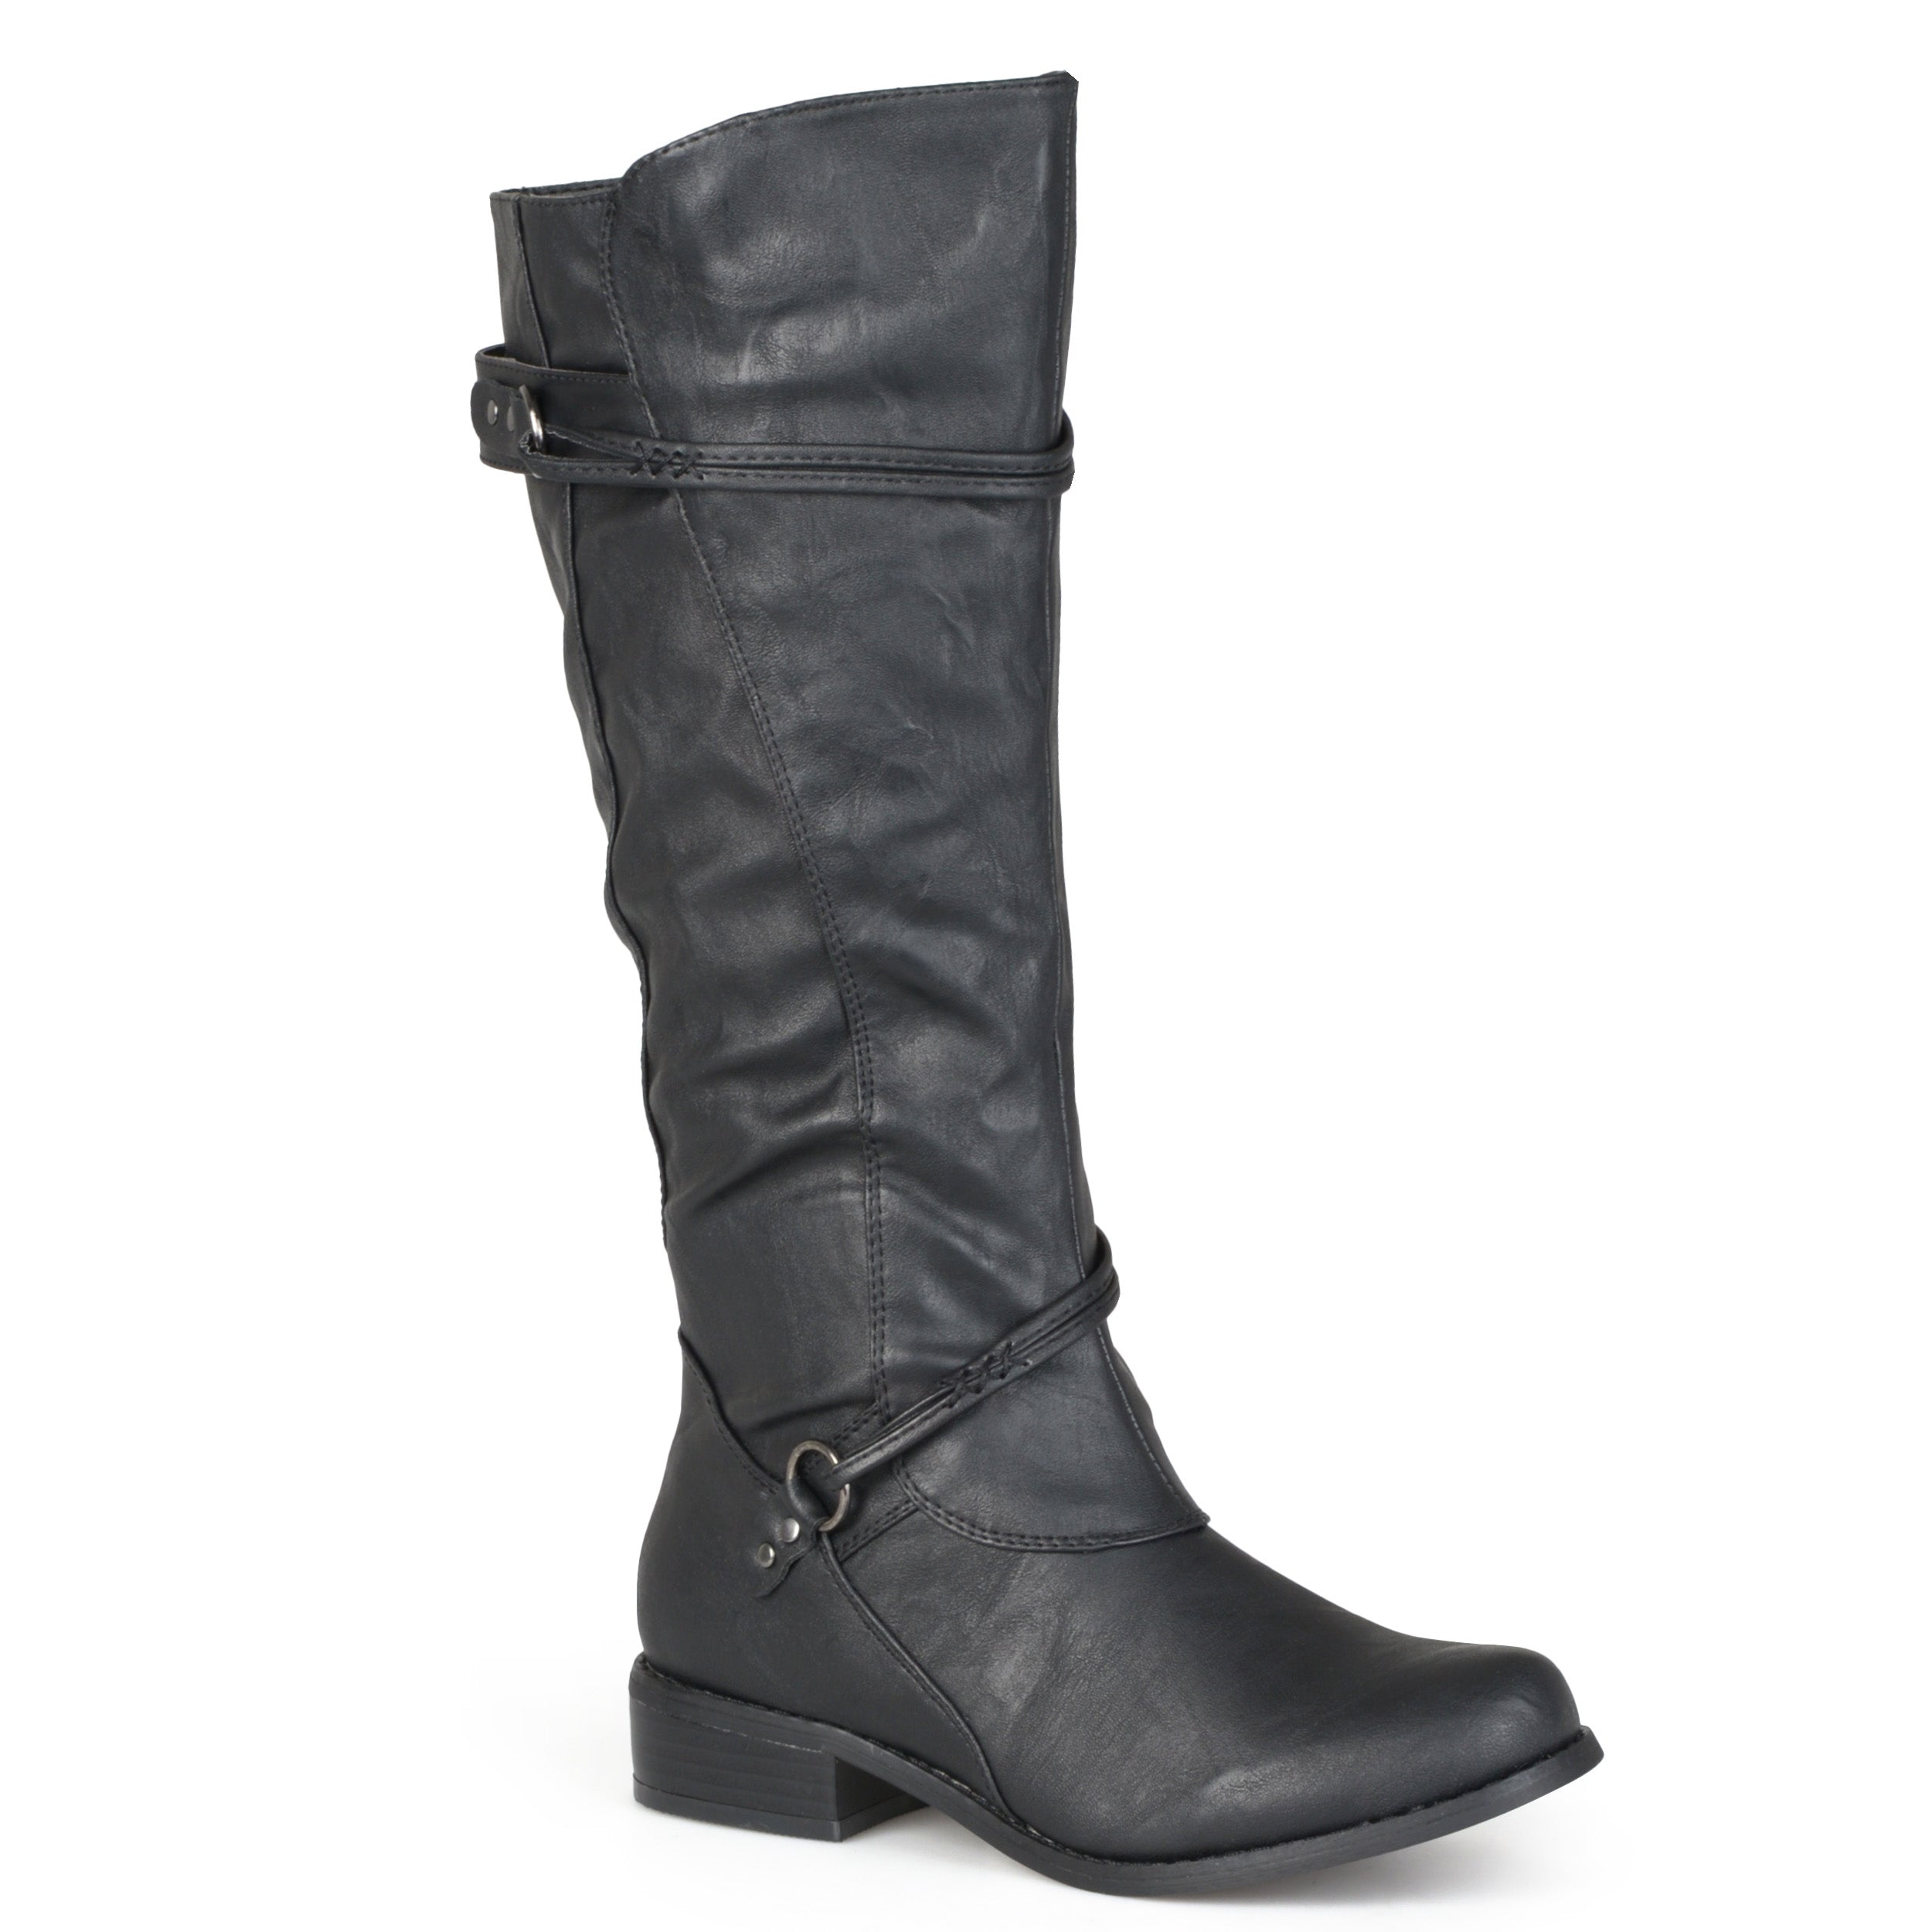 Womens Extra Wide Calf Knee High Faux Leather Riding Boots 5876a8adbf